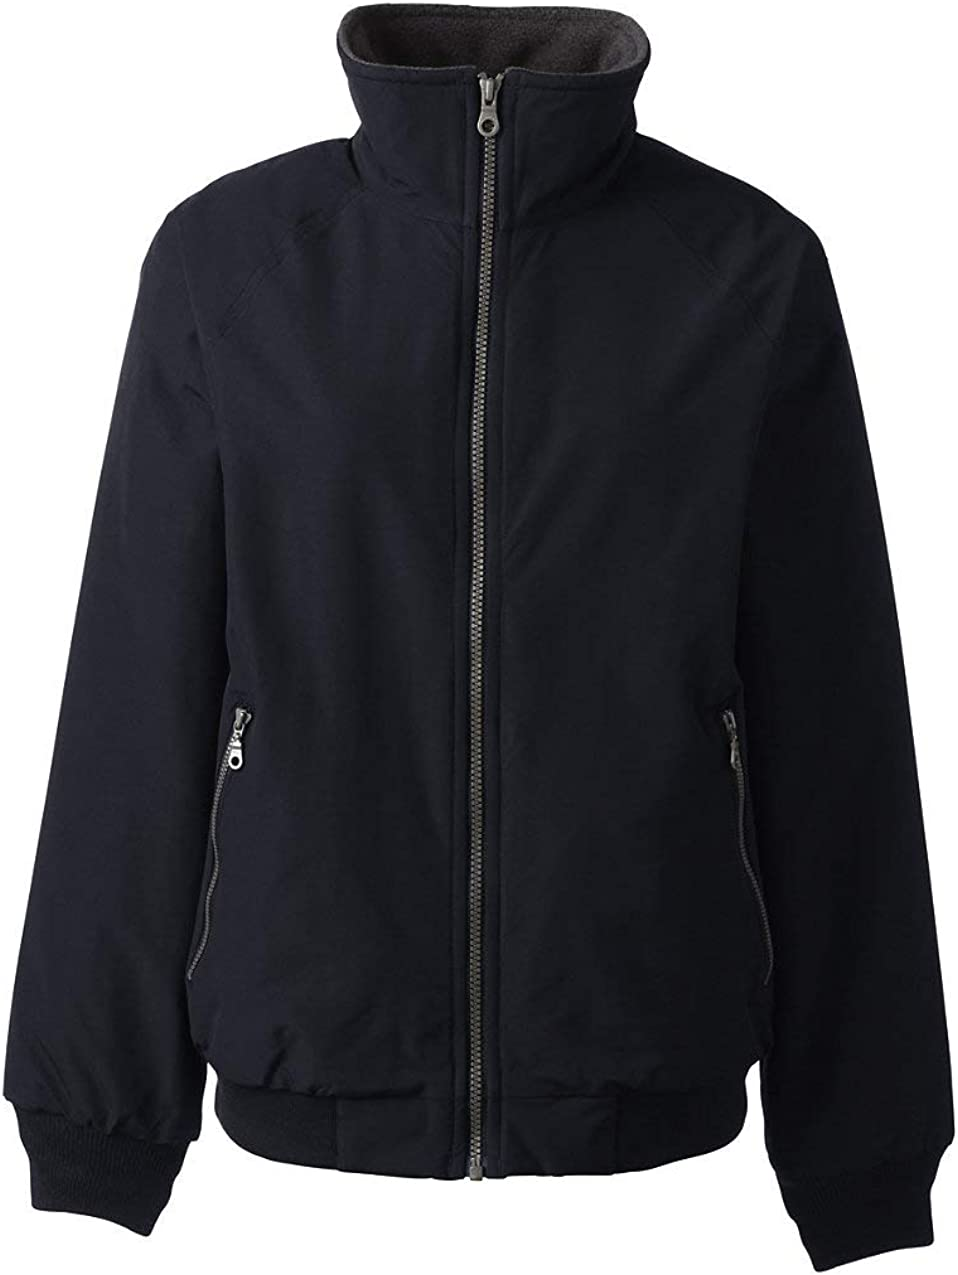 Lands' End Women's Classic Squall Jacket